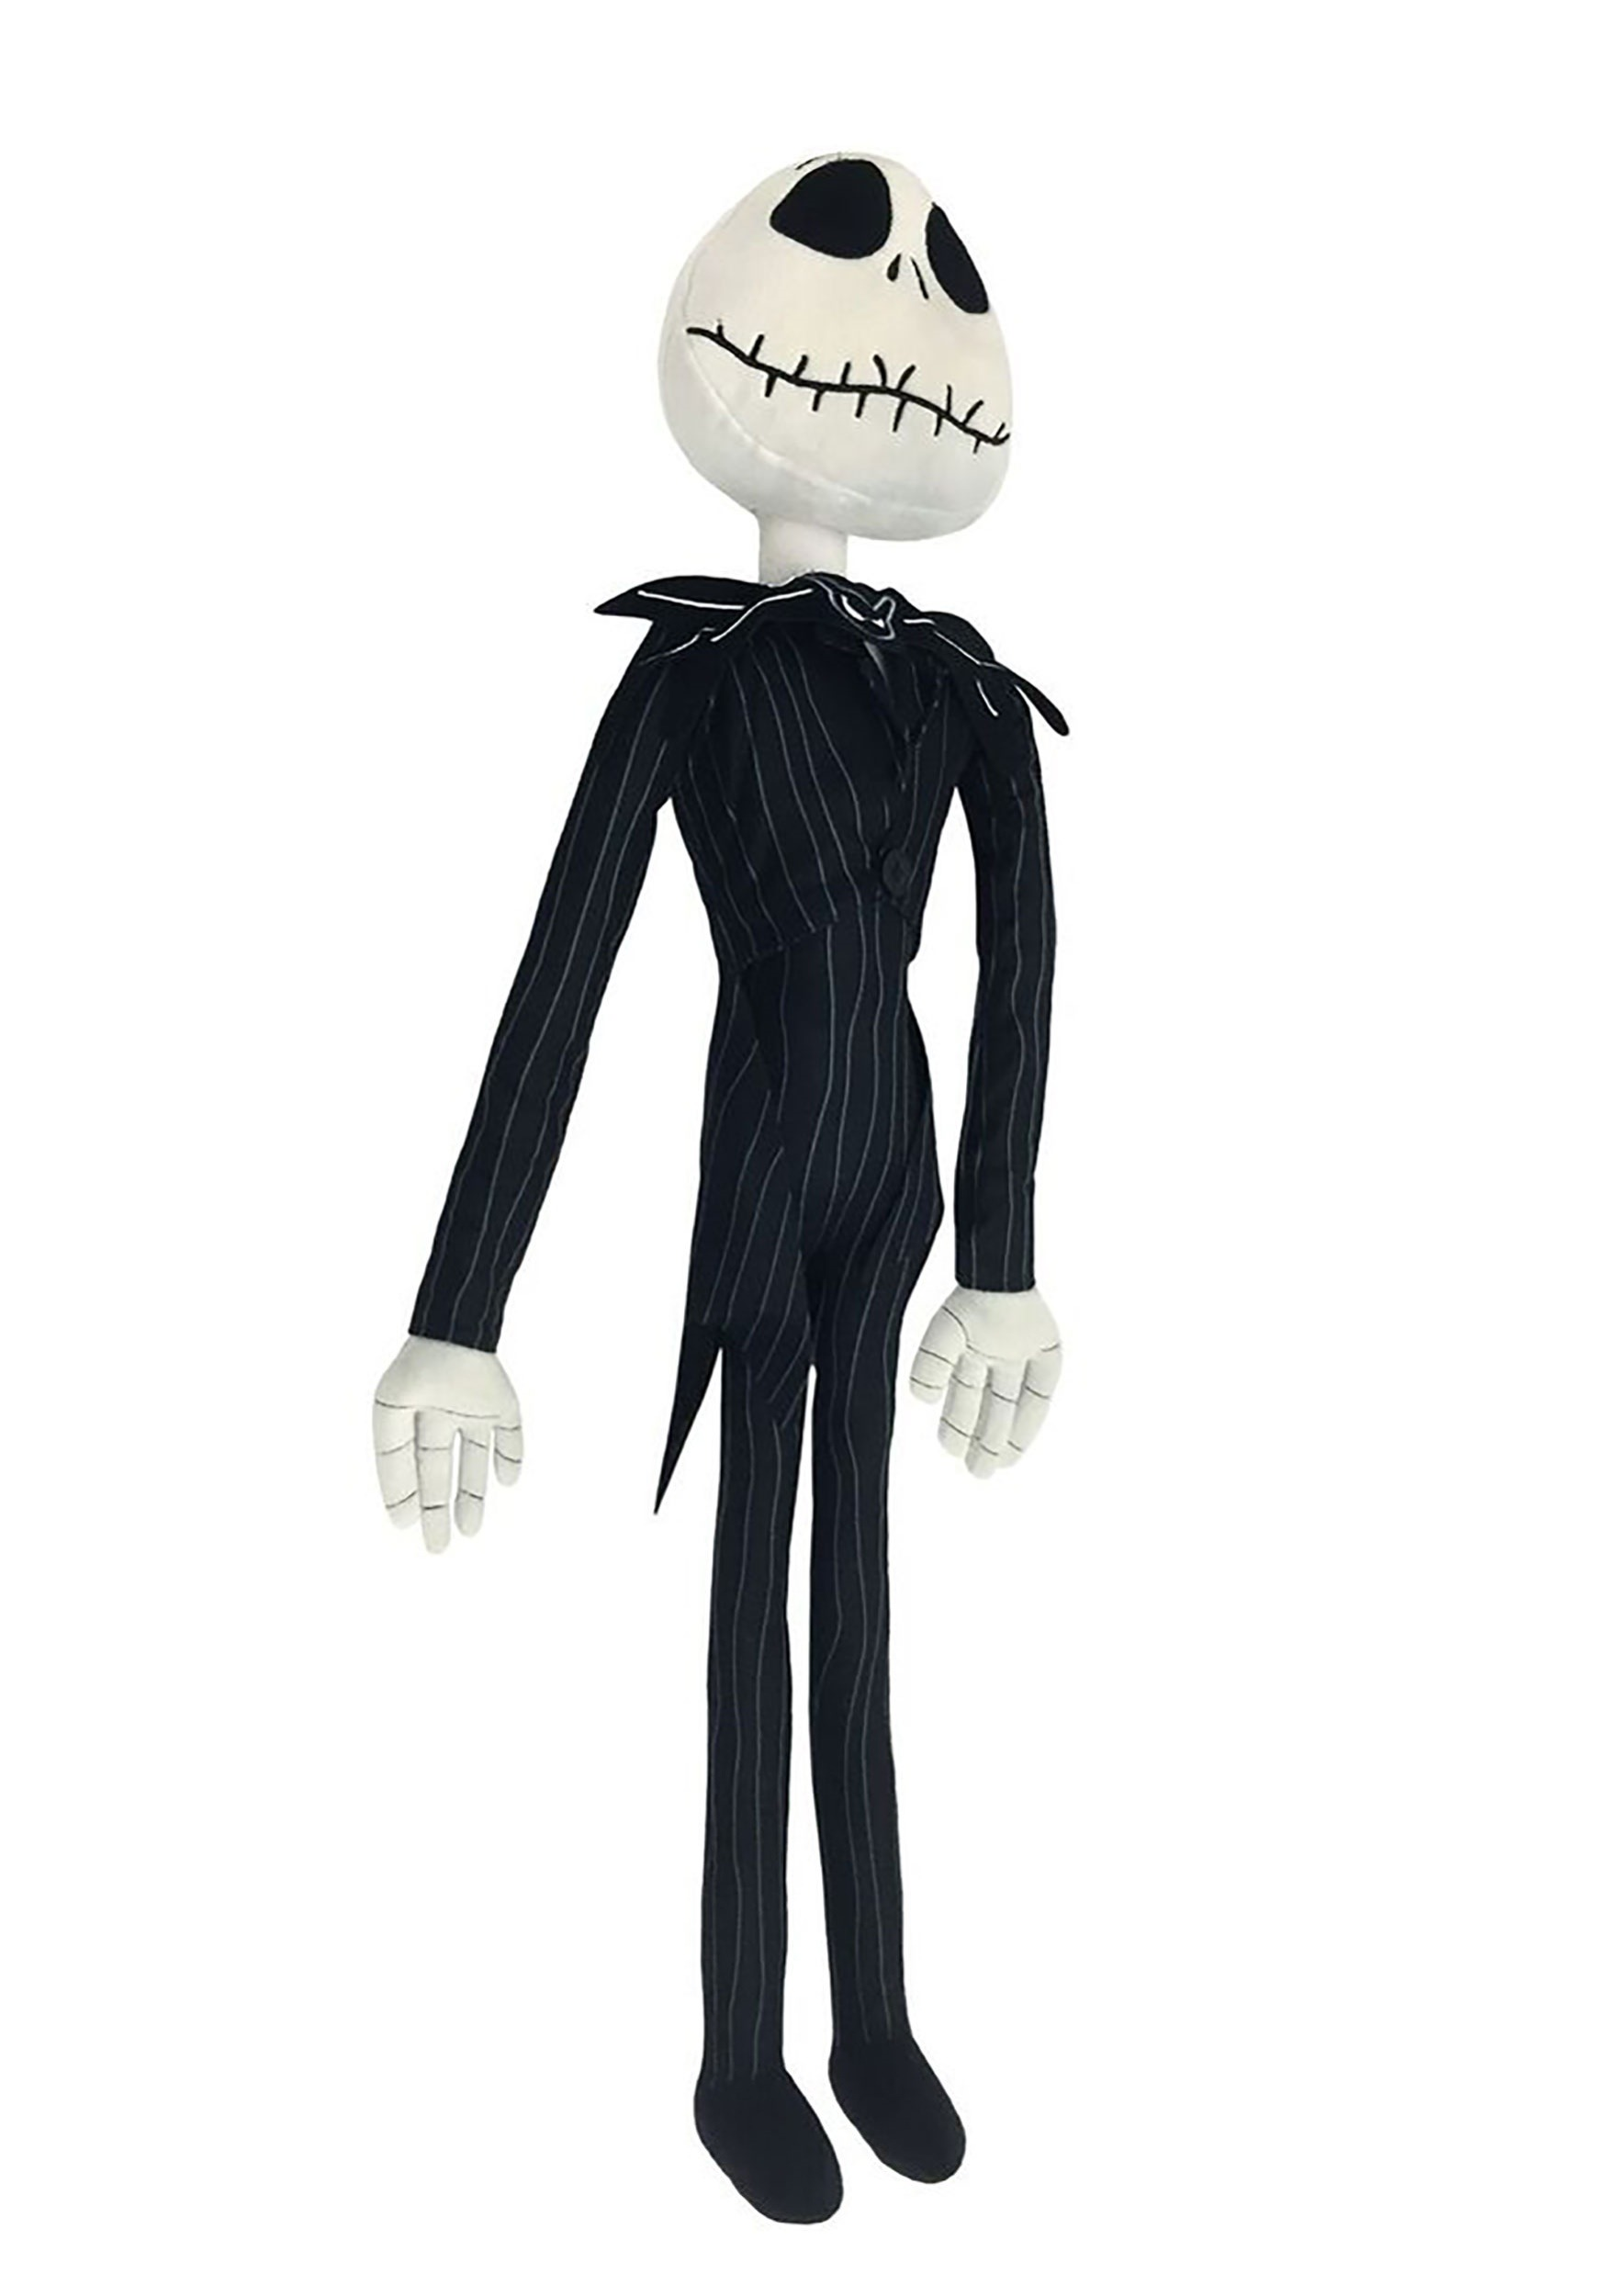 nightmare before christmas jack skellington stuffed doll - Christmas Jack Skellington